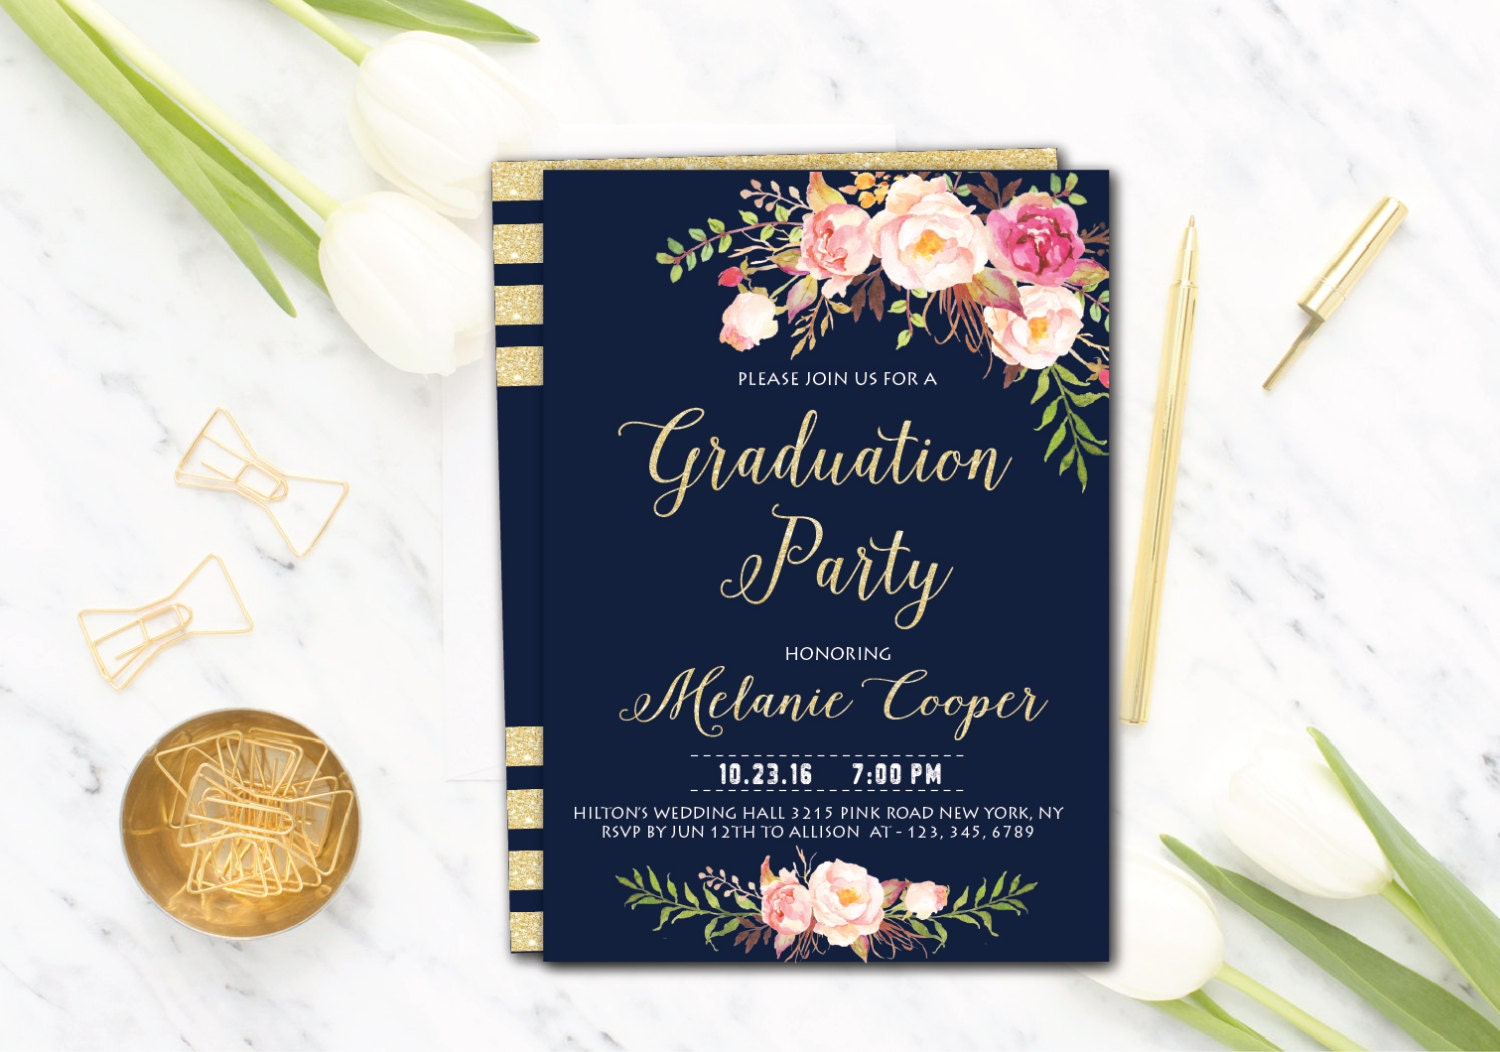 Graduation Party Invite College Graduation Graduation Party